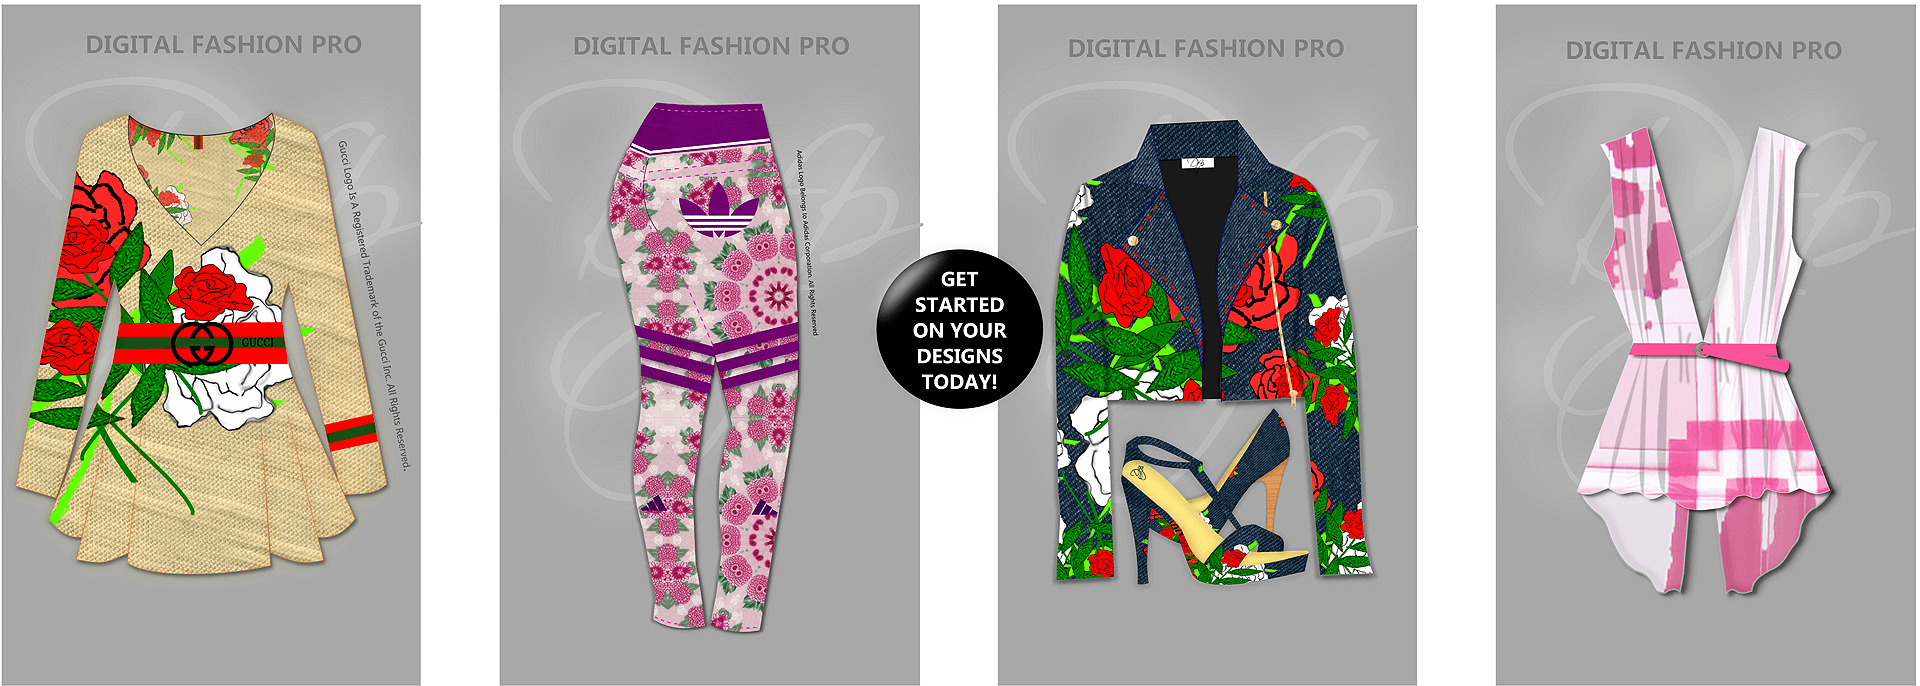 Starting a clothing line fashion design software - Digital Fashion Pro